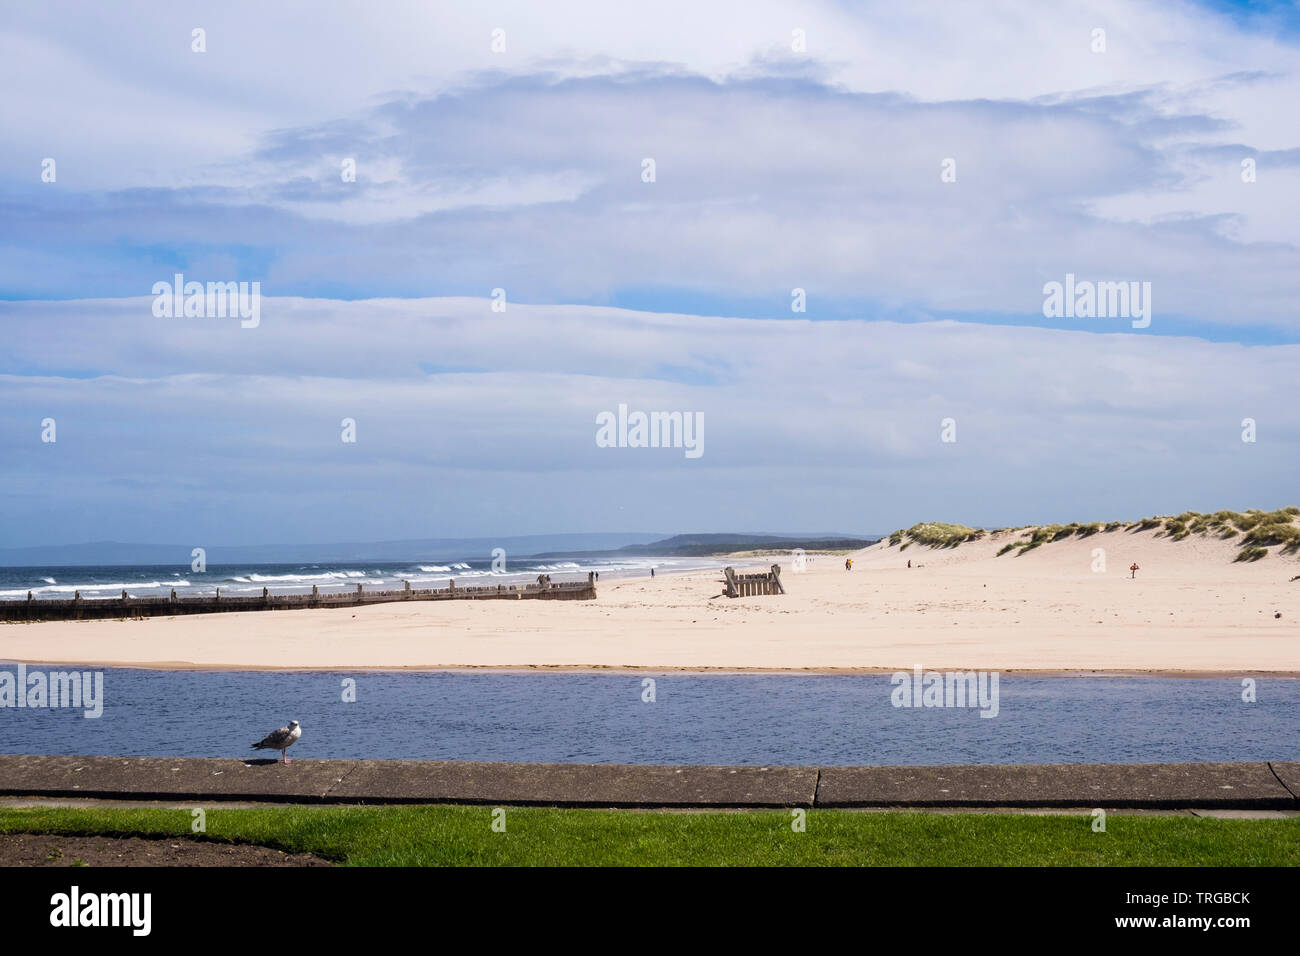 View to east beach and sand dunes across Lossie River mouth from waterfront promenade on Moray Firth coast. Lossiemouth, Moray, Scotland, UK, Britain Stock Photo